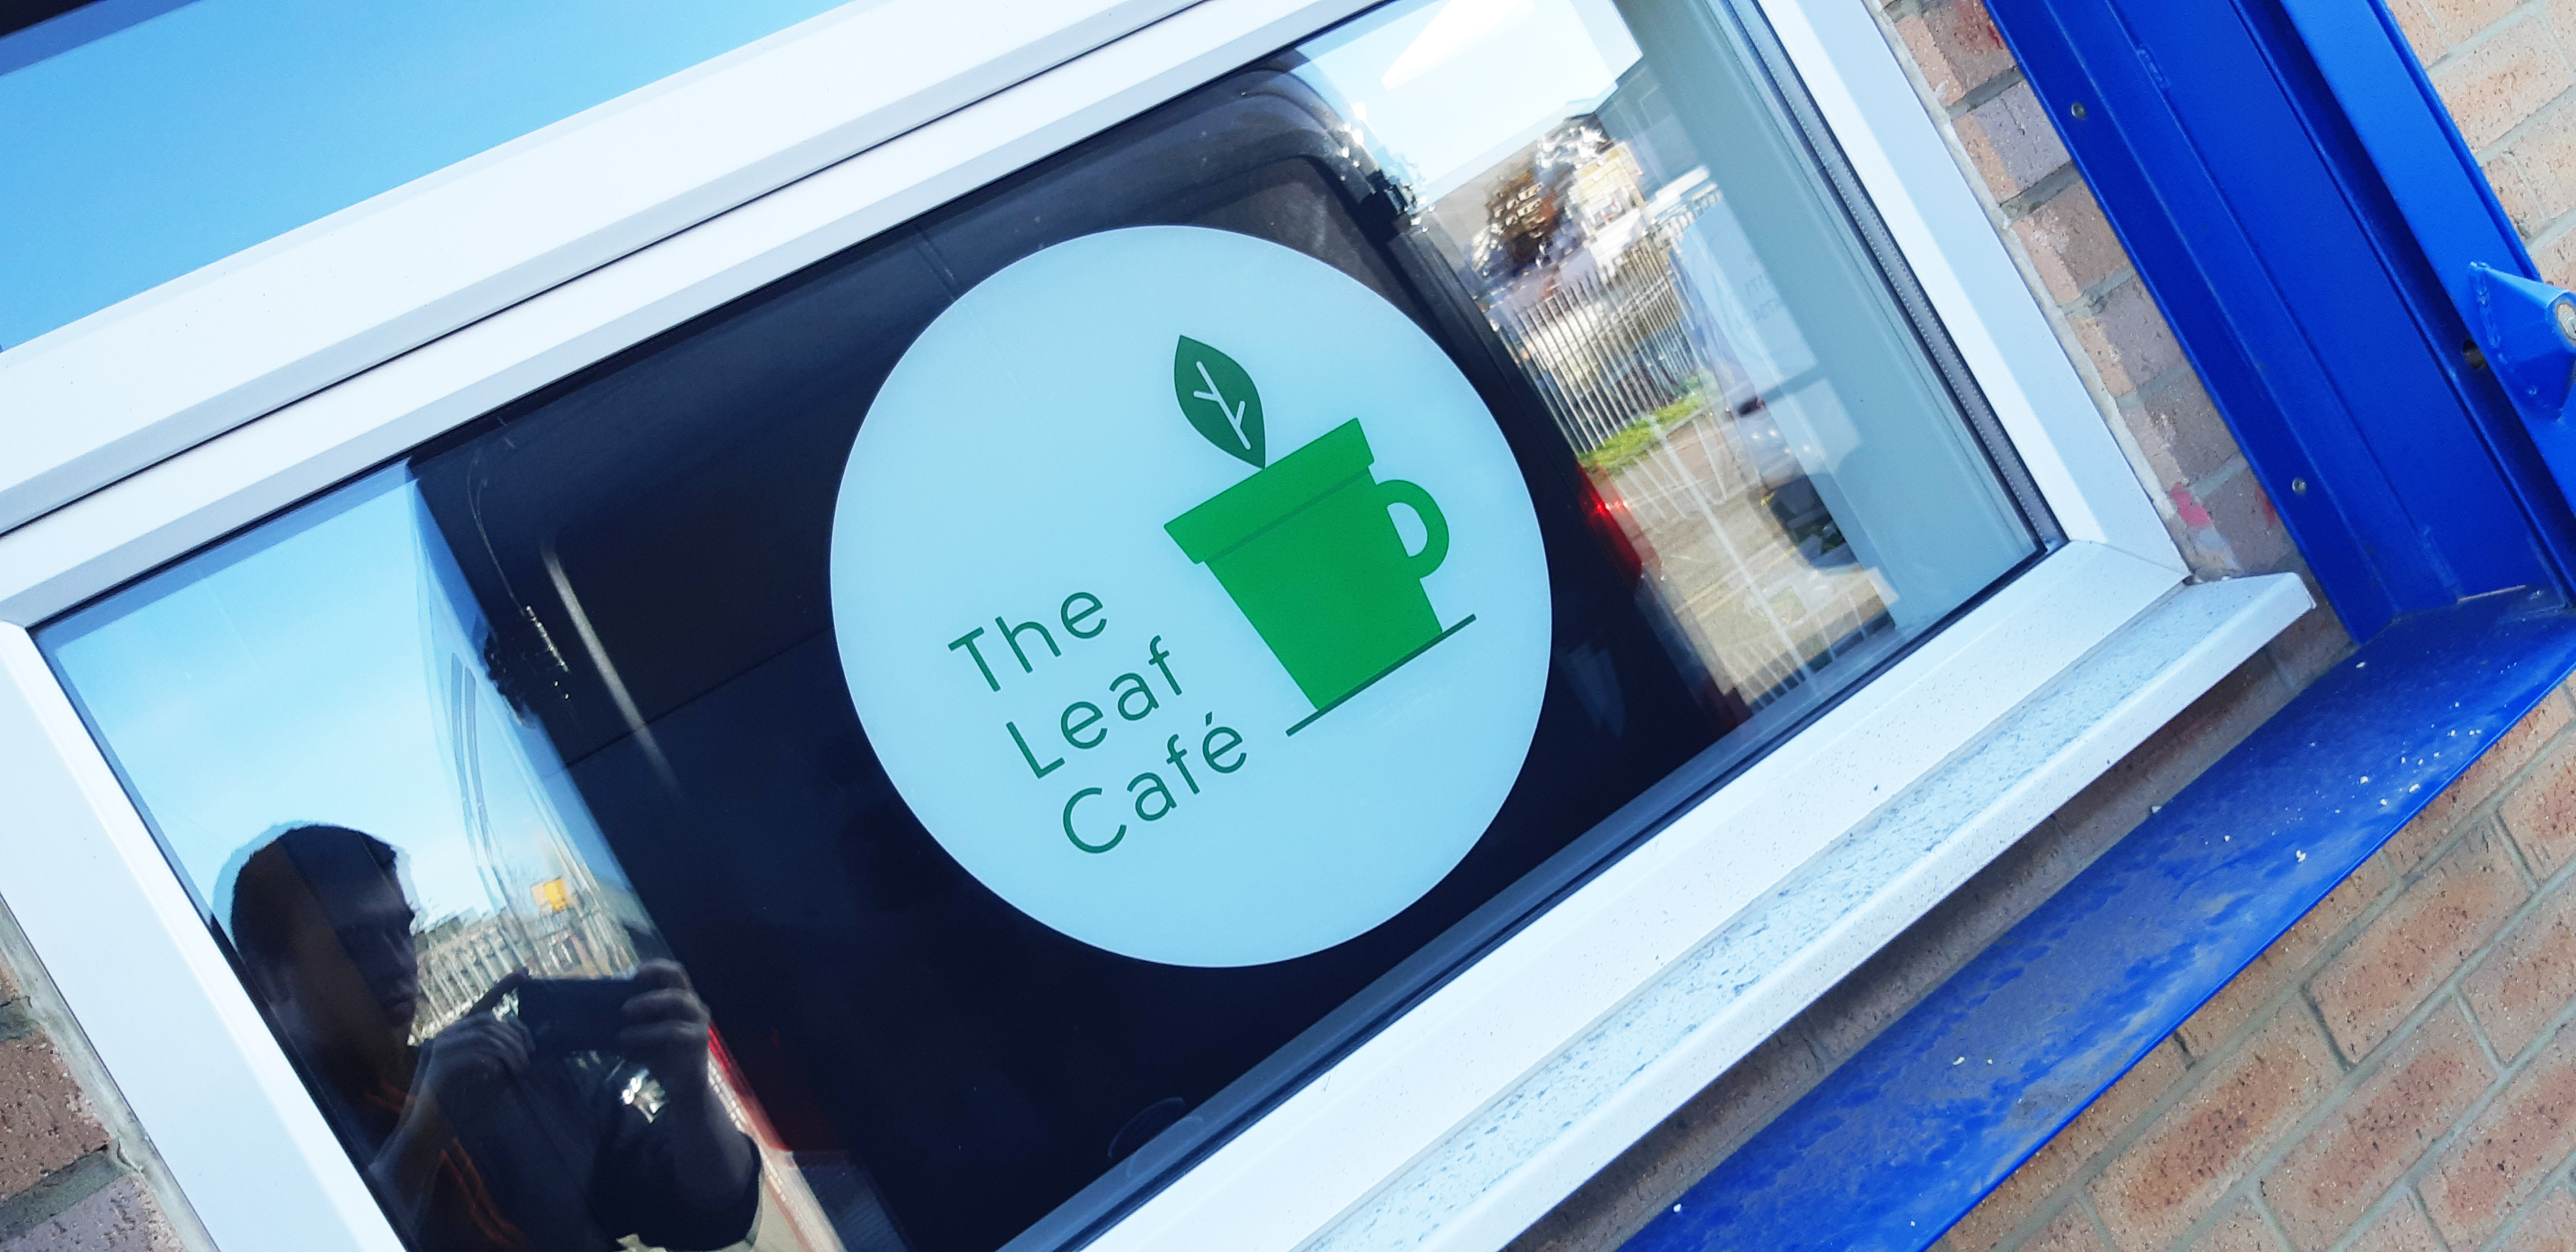 The-Leaf-Cafe-Window-Sticker